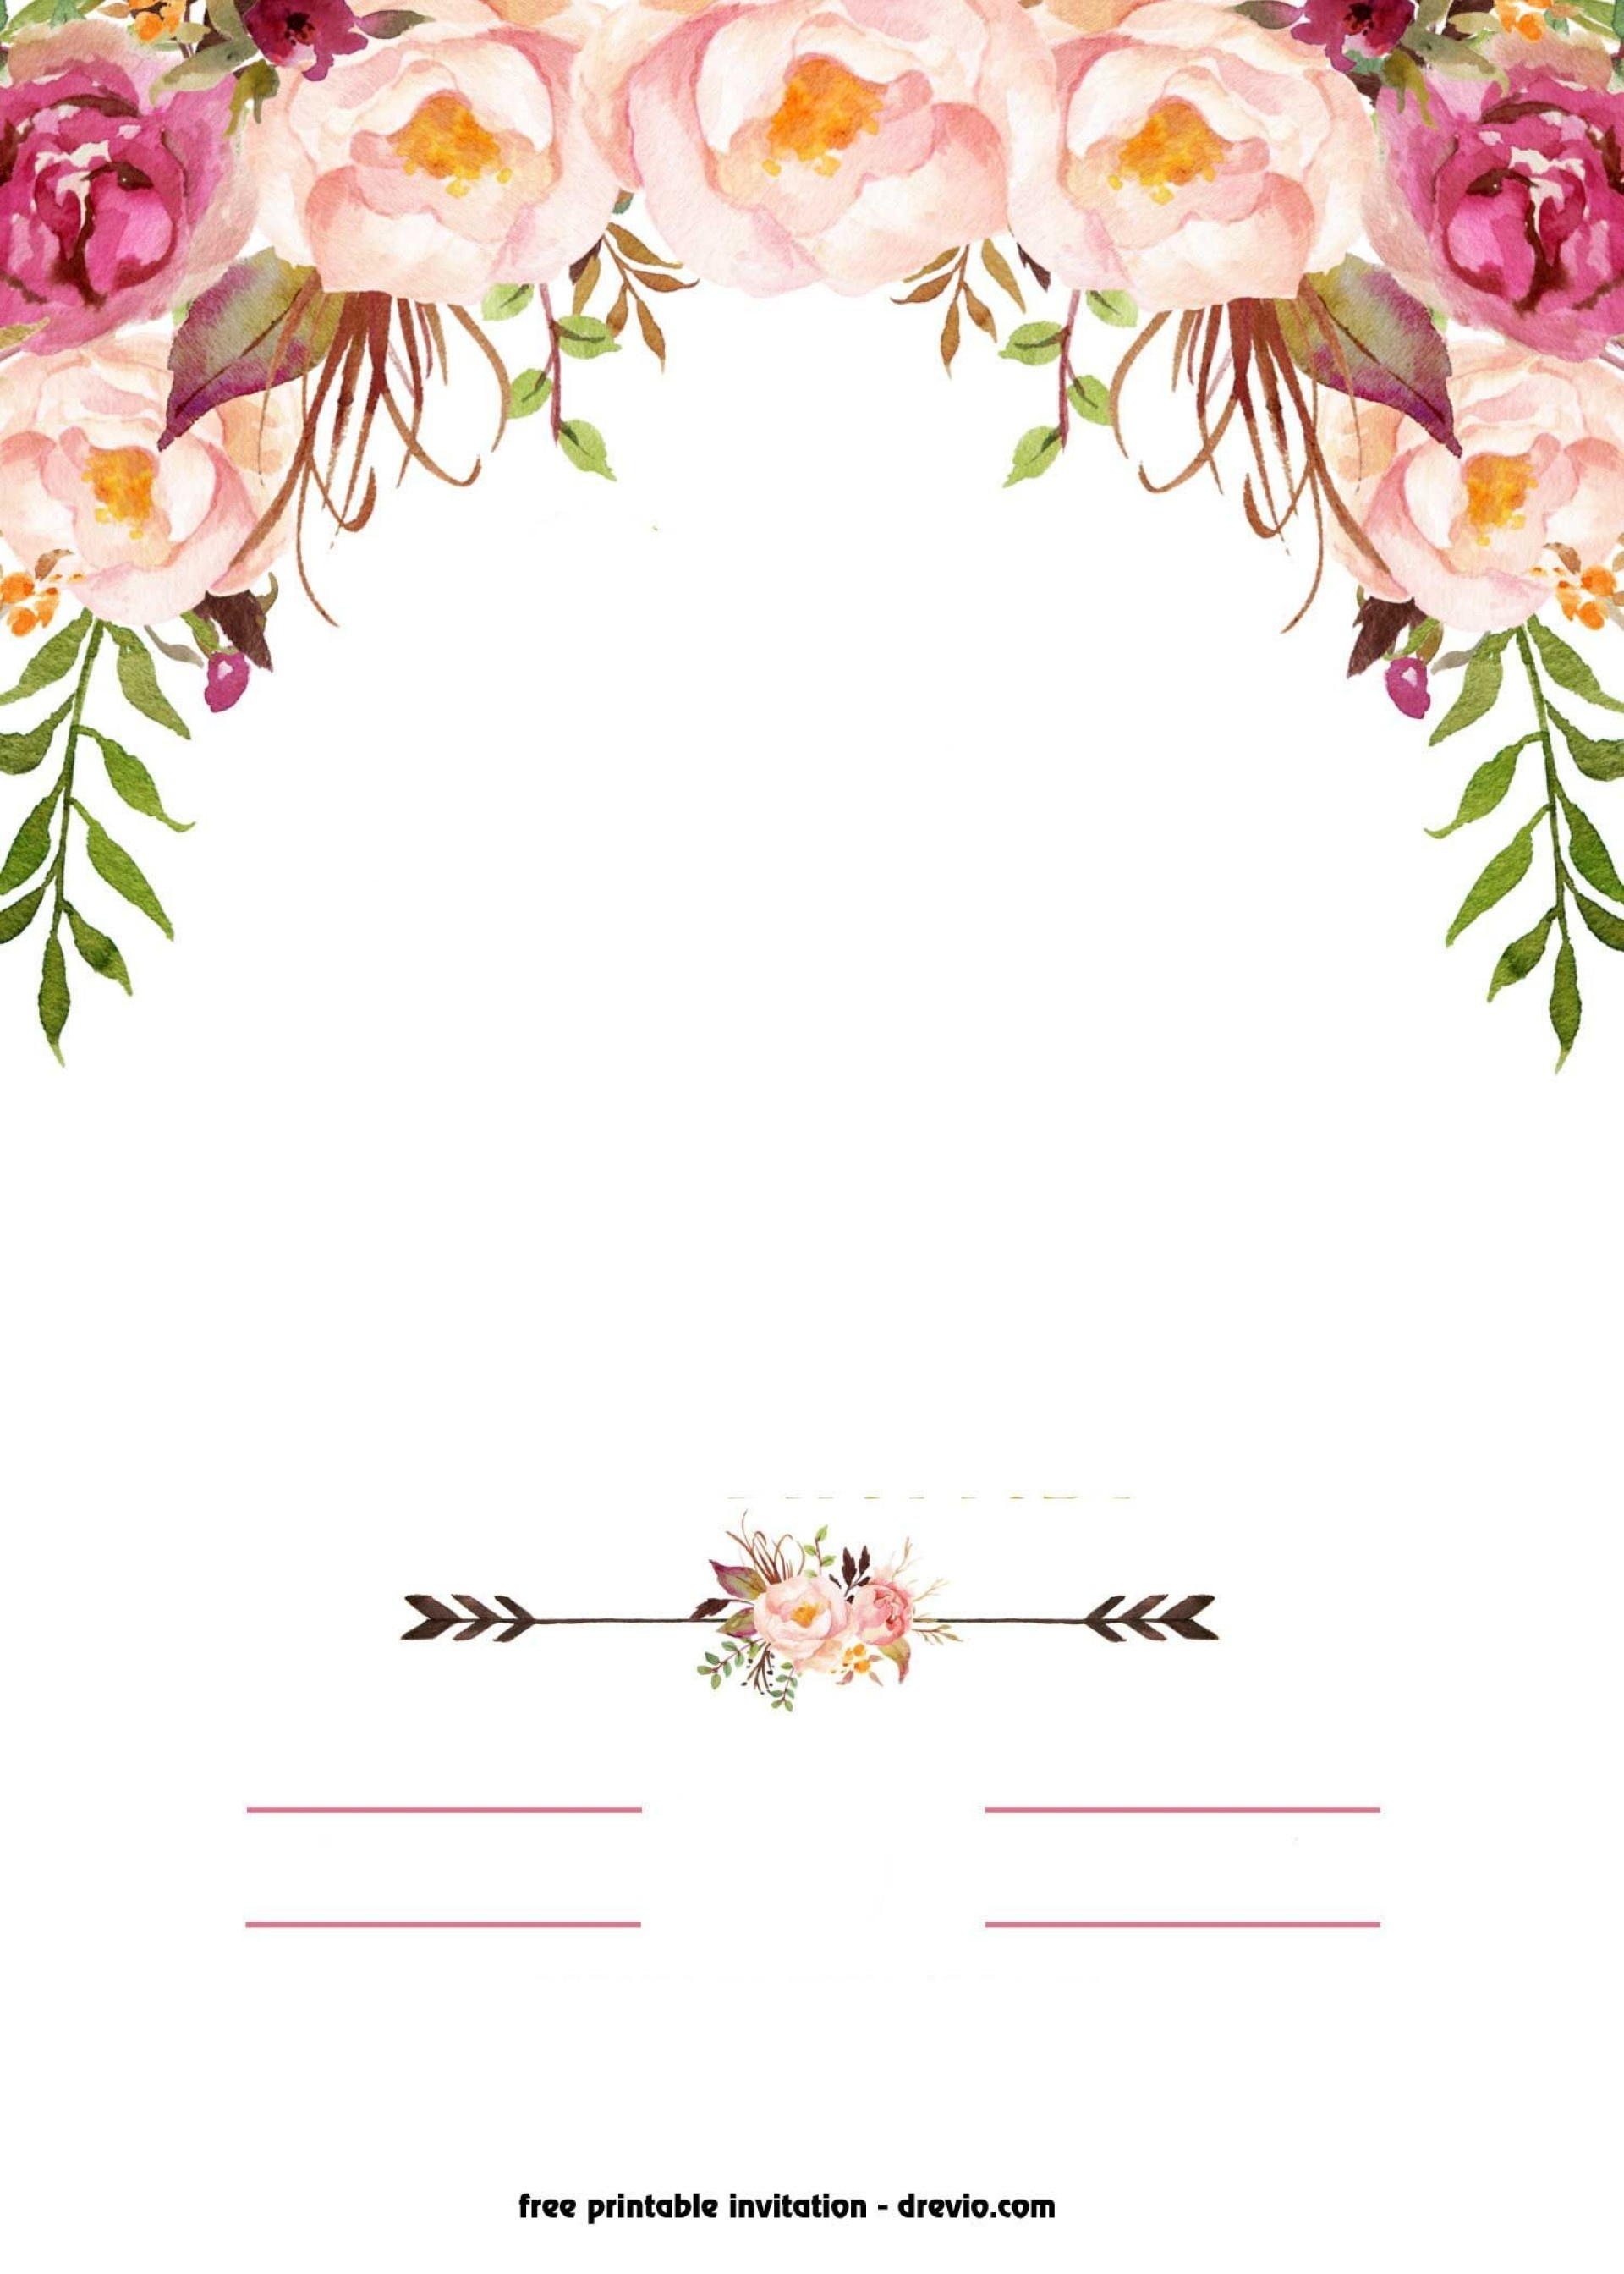 018 Free Printable Baby Cards Templates Template Phenomenal Ideas - Free Printable Baby Cards